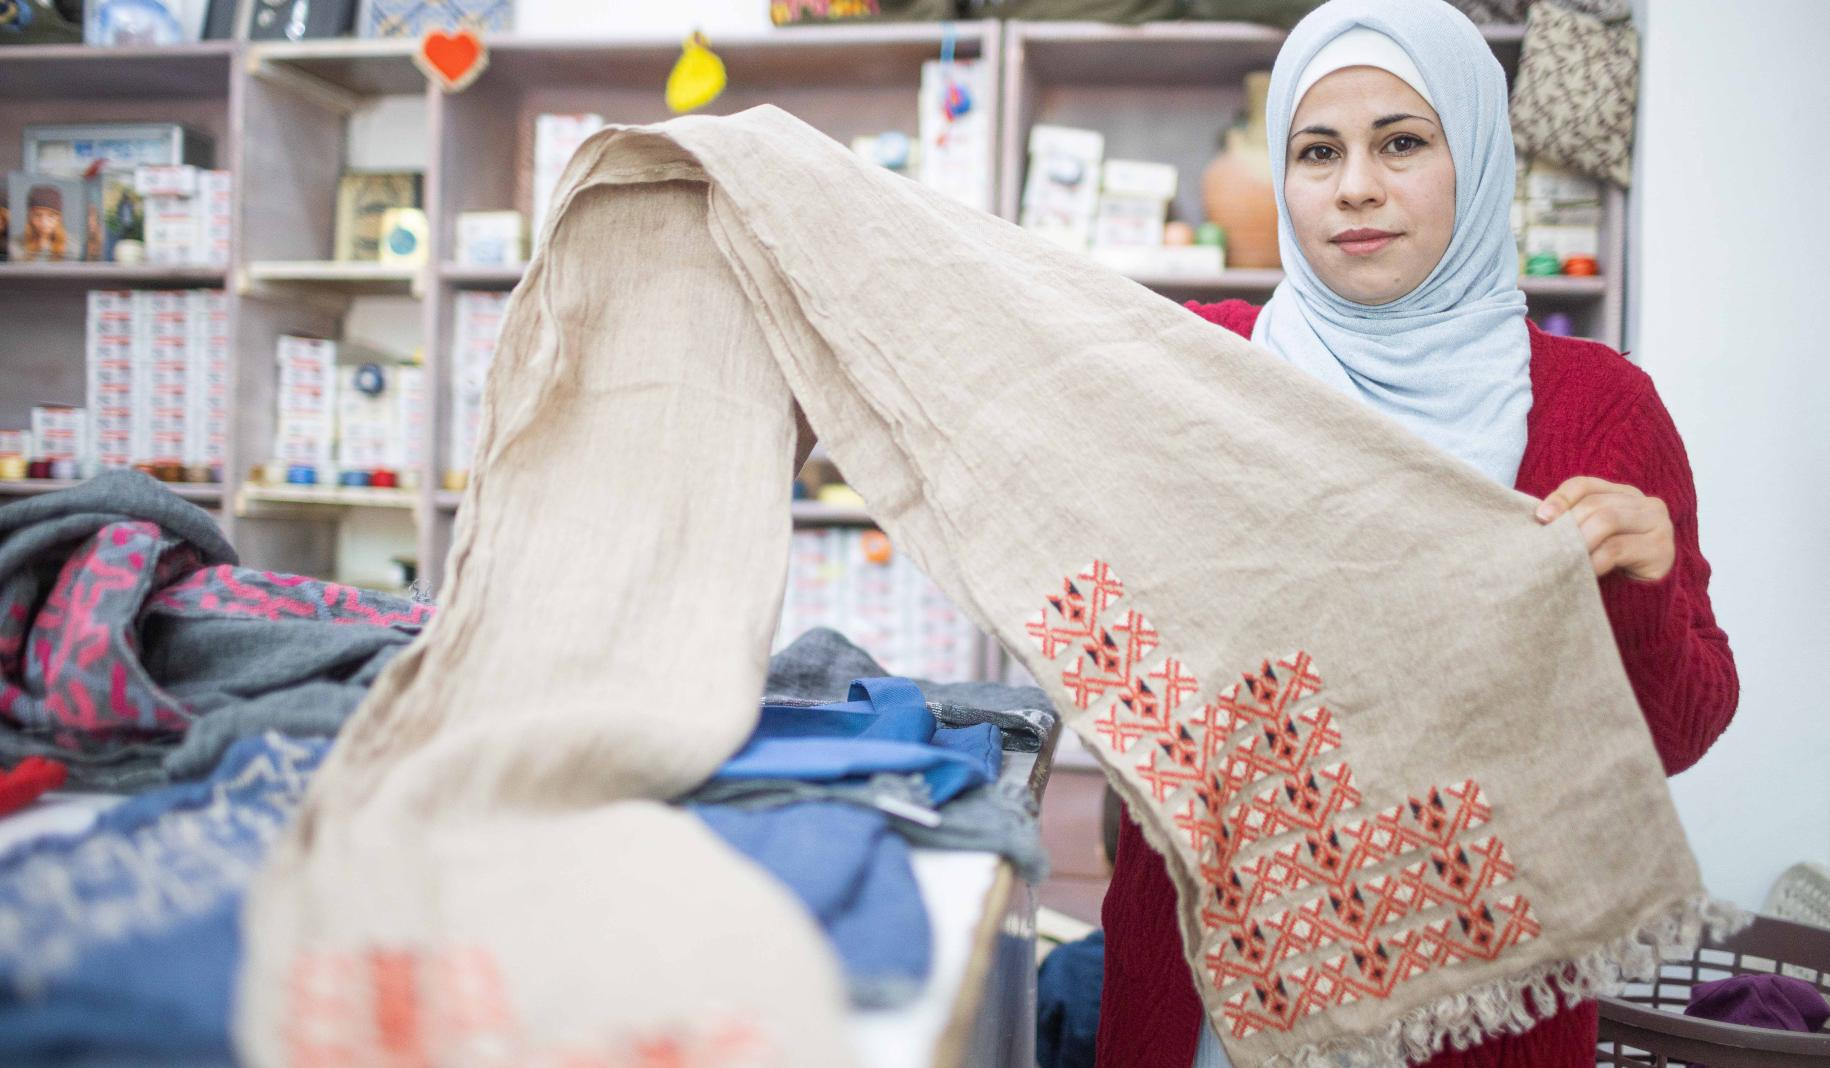 Amal, 33, stands by her work station and holds up fabric.